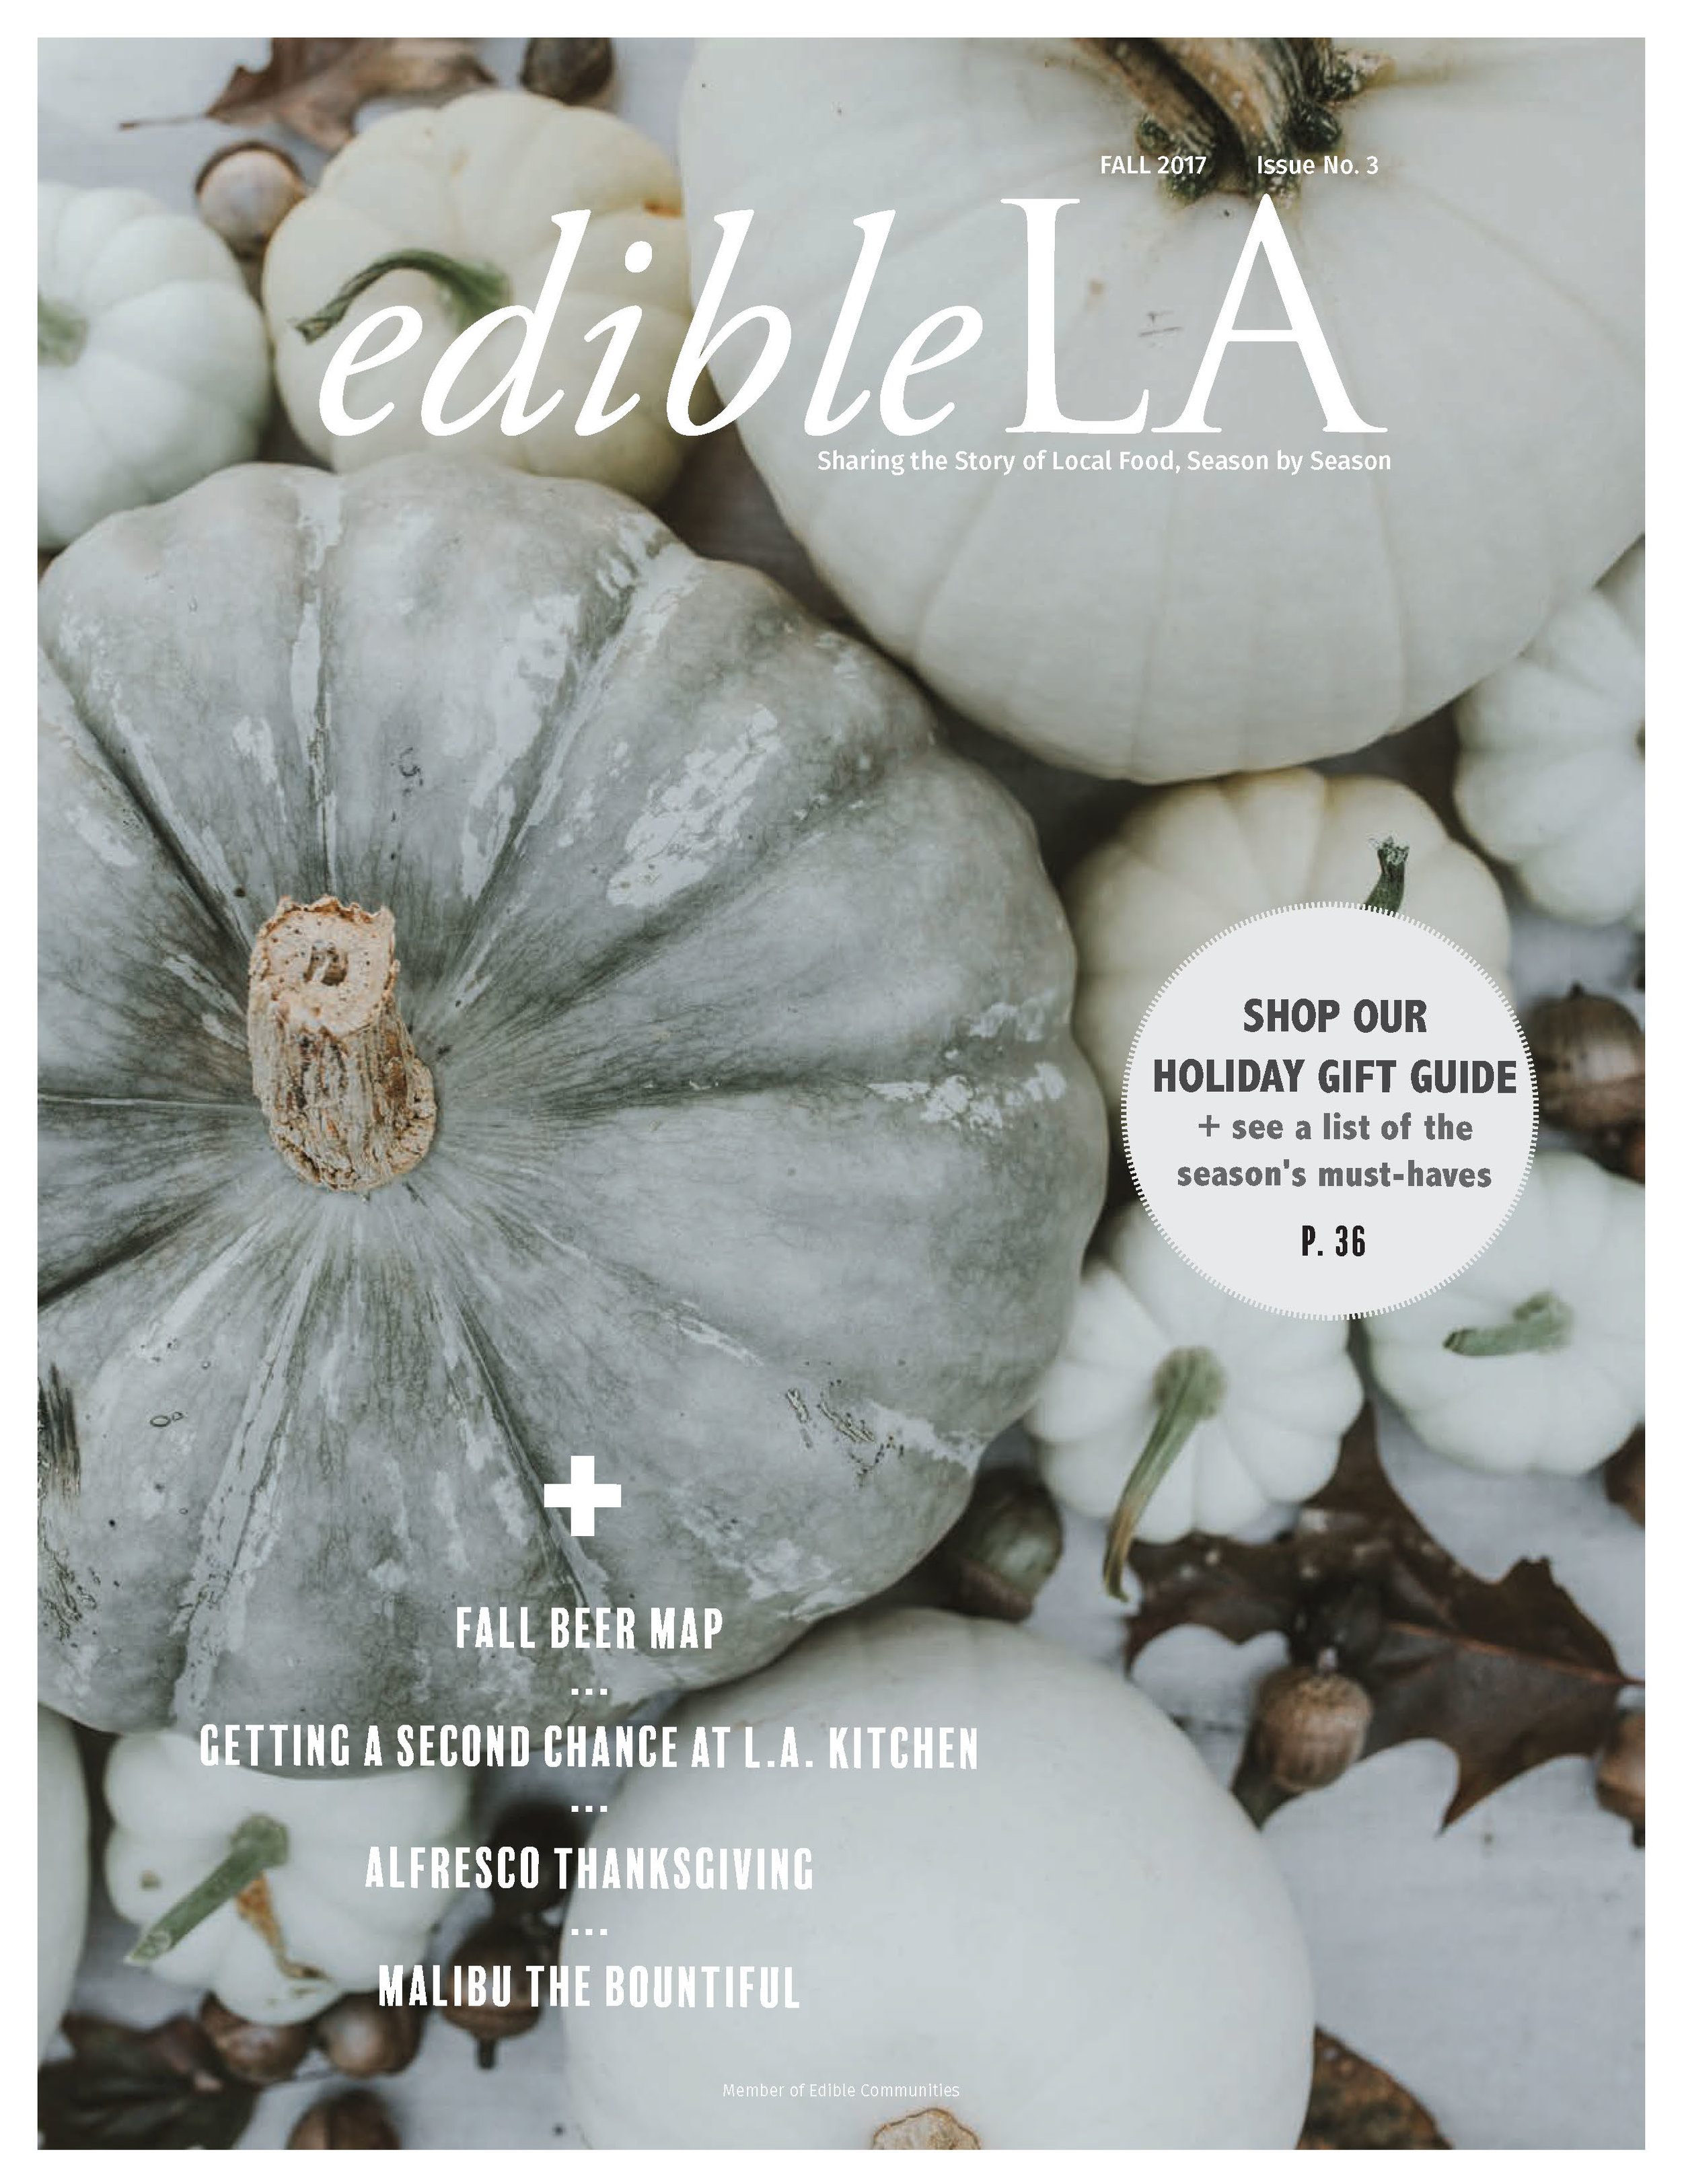 Imperfect Beauty - Edible LA Issue 3, Fall 2017